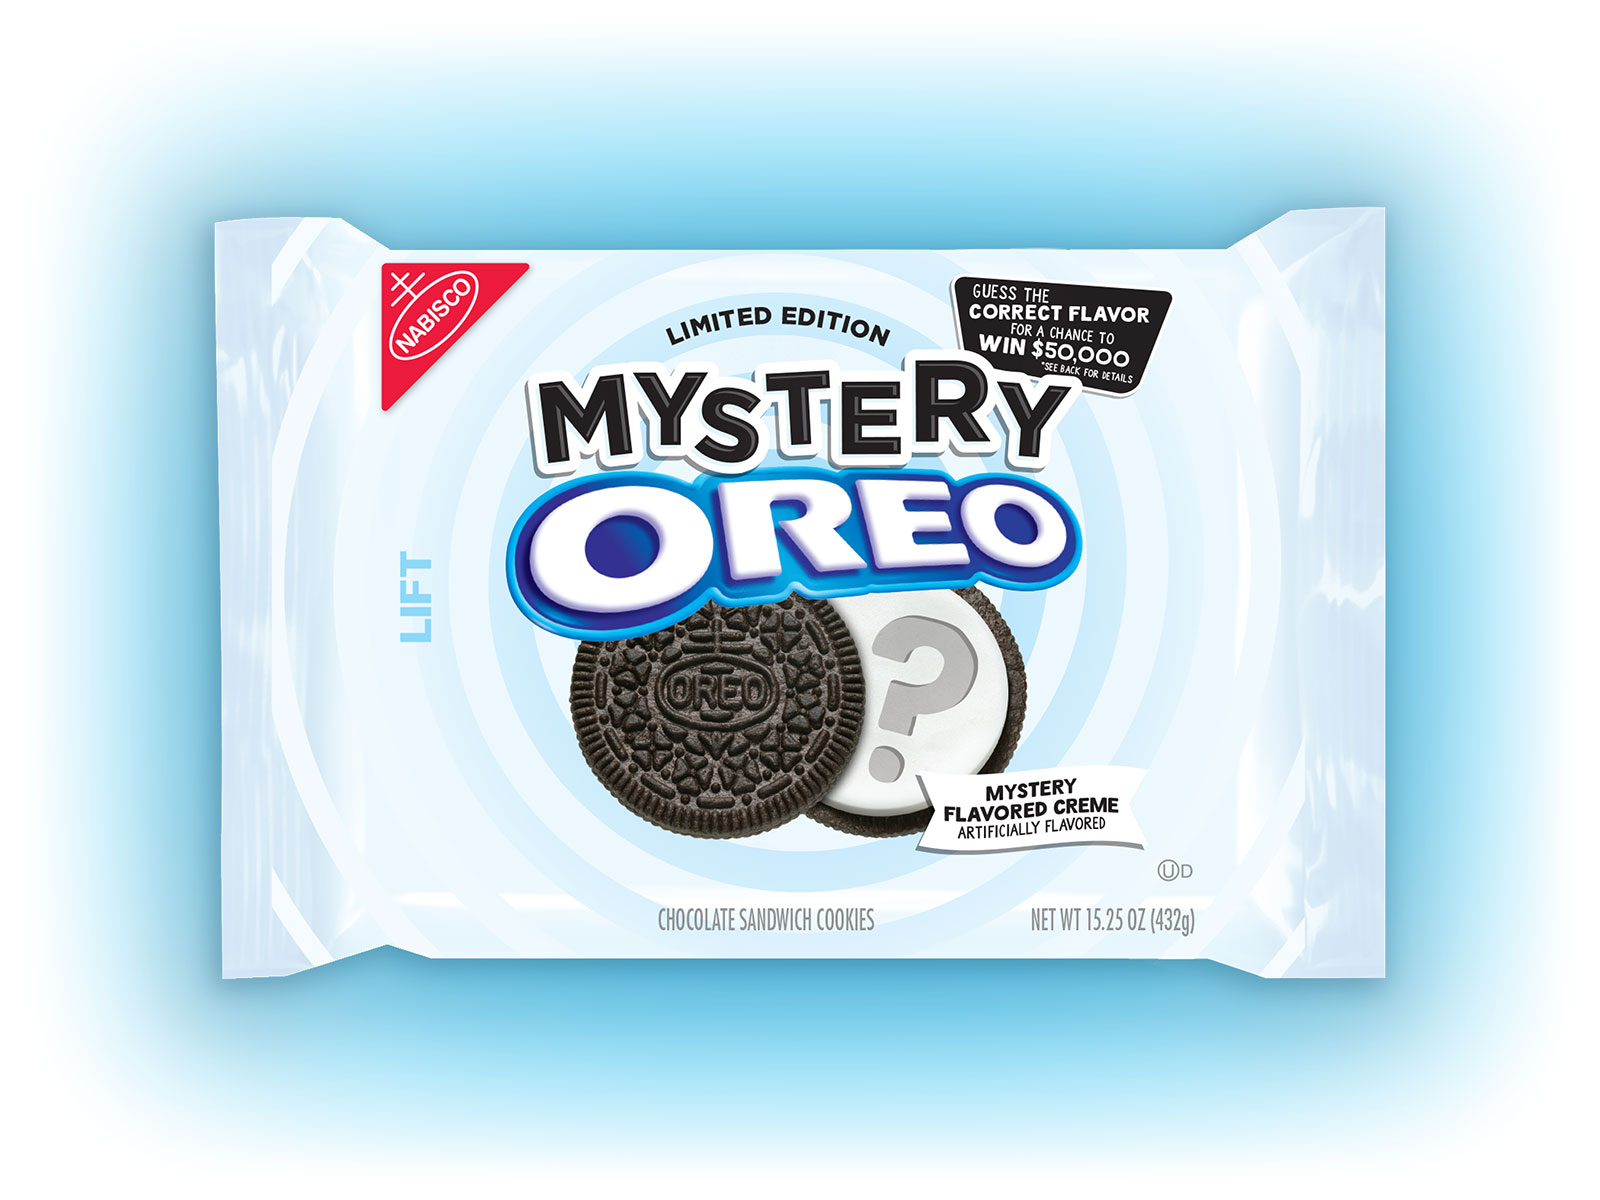 A New Mystery Oreo Flavor Will Arrive Later This Year